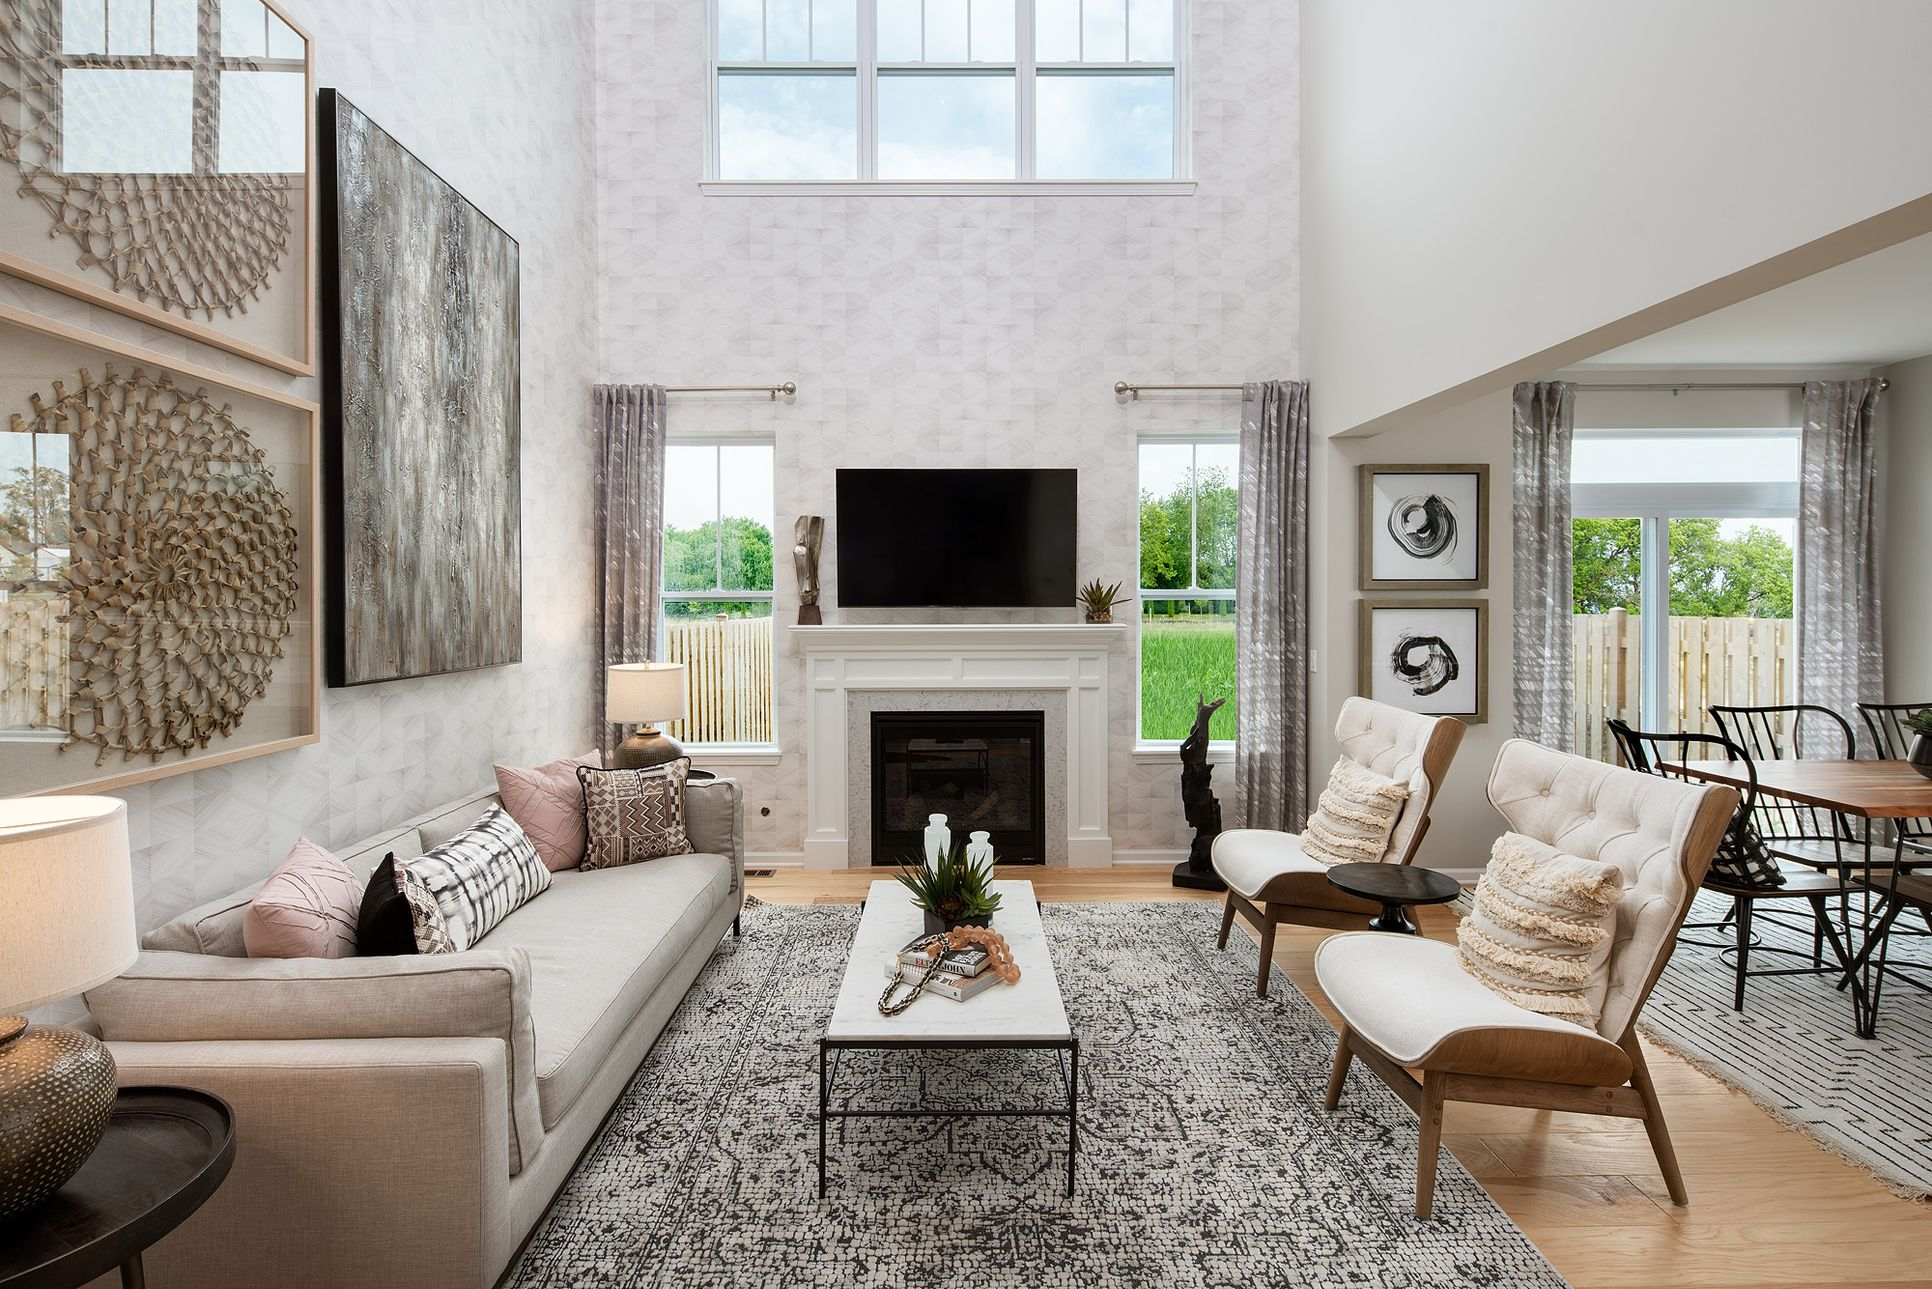 LexTrace Living Room:Open space